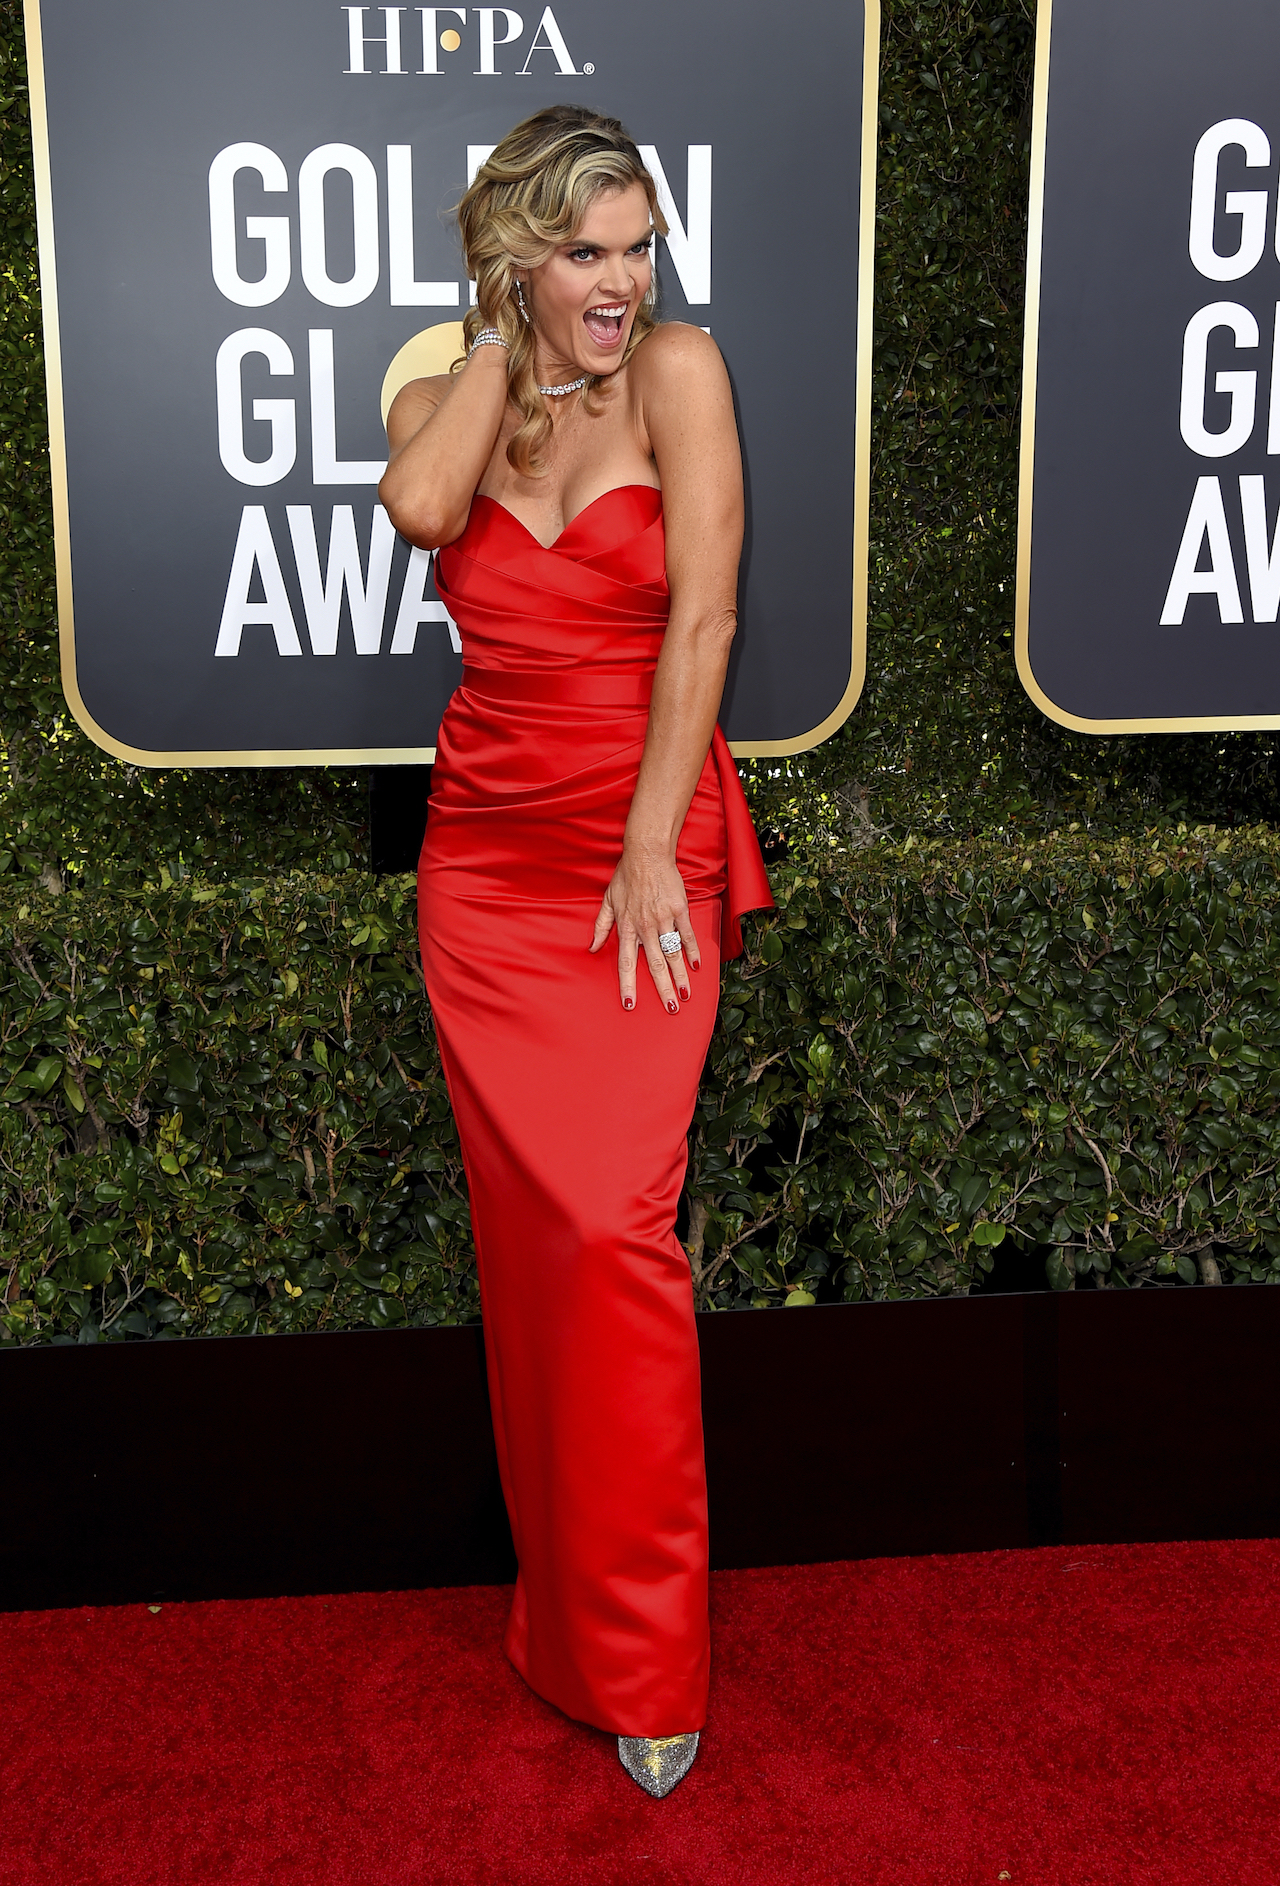 <div class='meta'><div class='origin-logo' data-origin='AP'></div><span class='caption-text' data-credit='Jordan Strauss/Invision/AP'>Missi Pyle arrives at the 76th annual Golden Globe Awards at the Beverly Hilton Hotel on Sunday, Jan. 6, 2019, in Beverly Hills, Calif.</span></div>